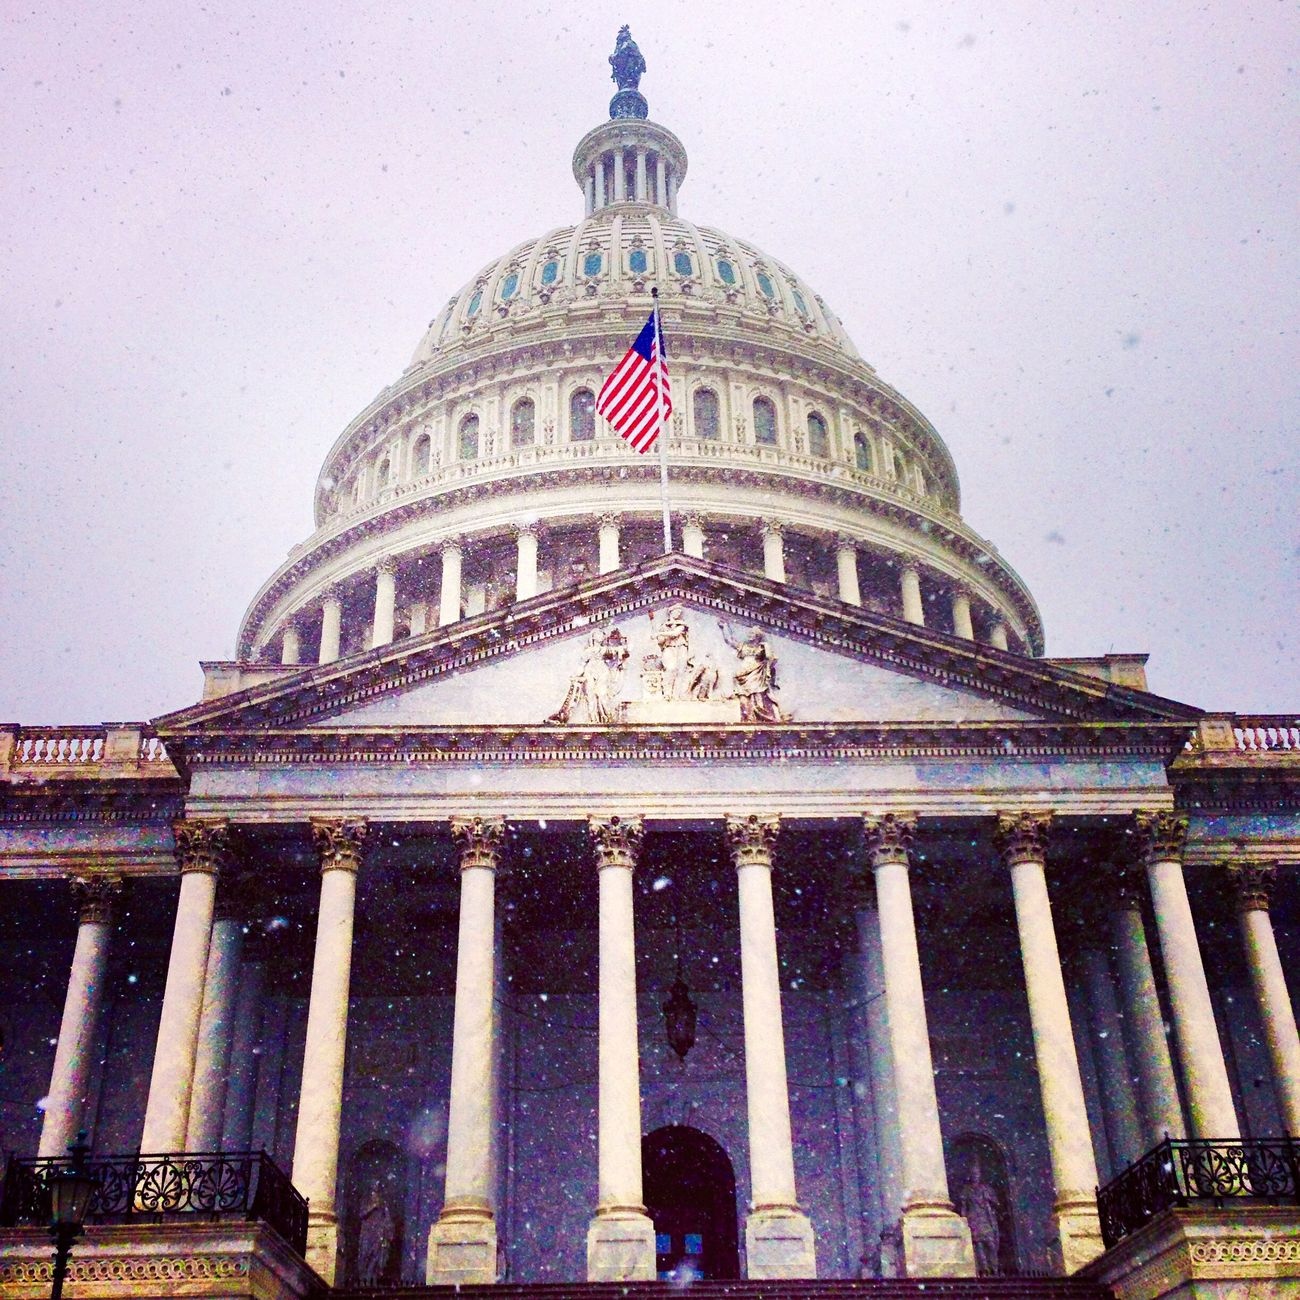 Lobbying in the Snow Cityscapes Arts Advicacy Day